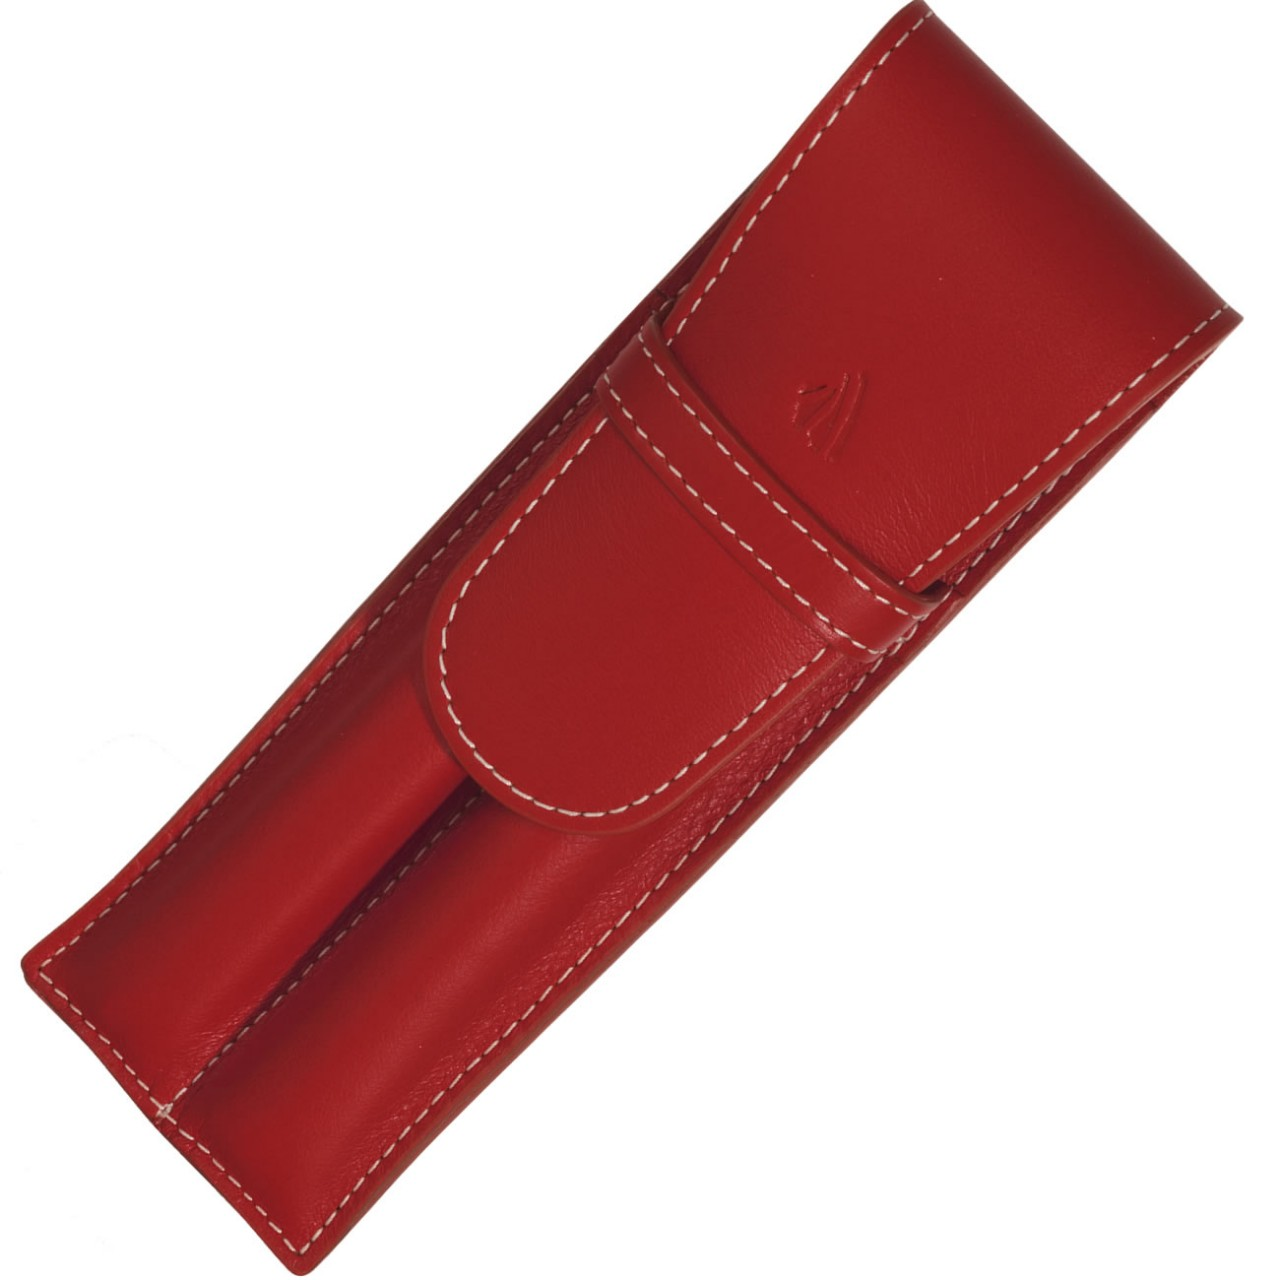 LARGE SOFT PEN POUCH W/FLAP 2P * RIVIERA RED